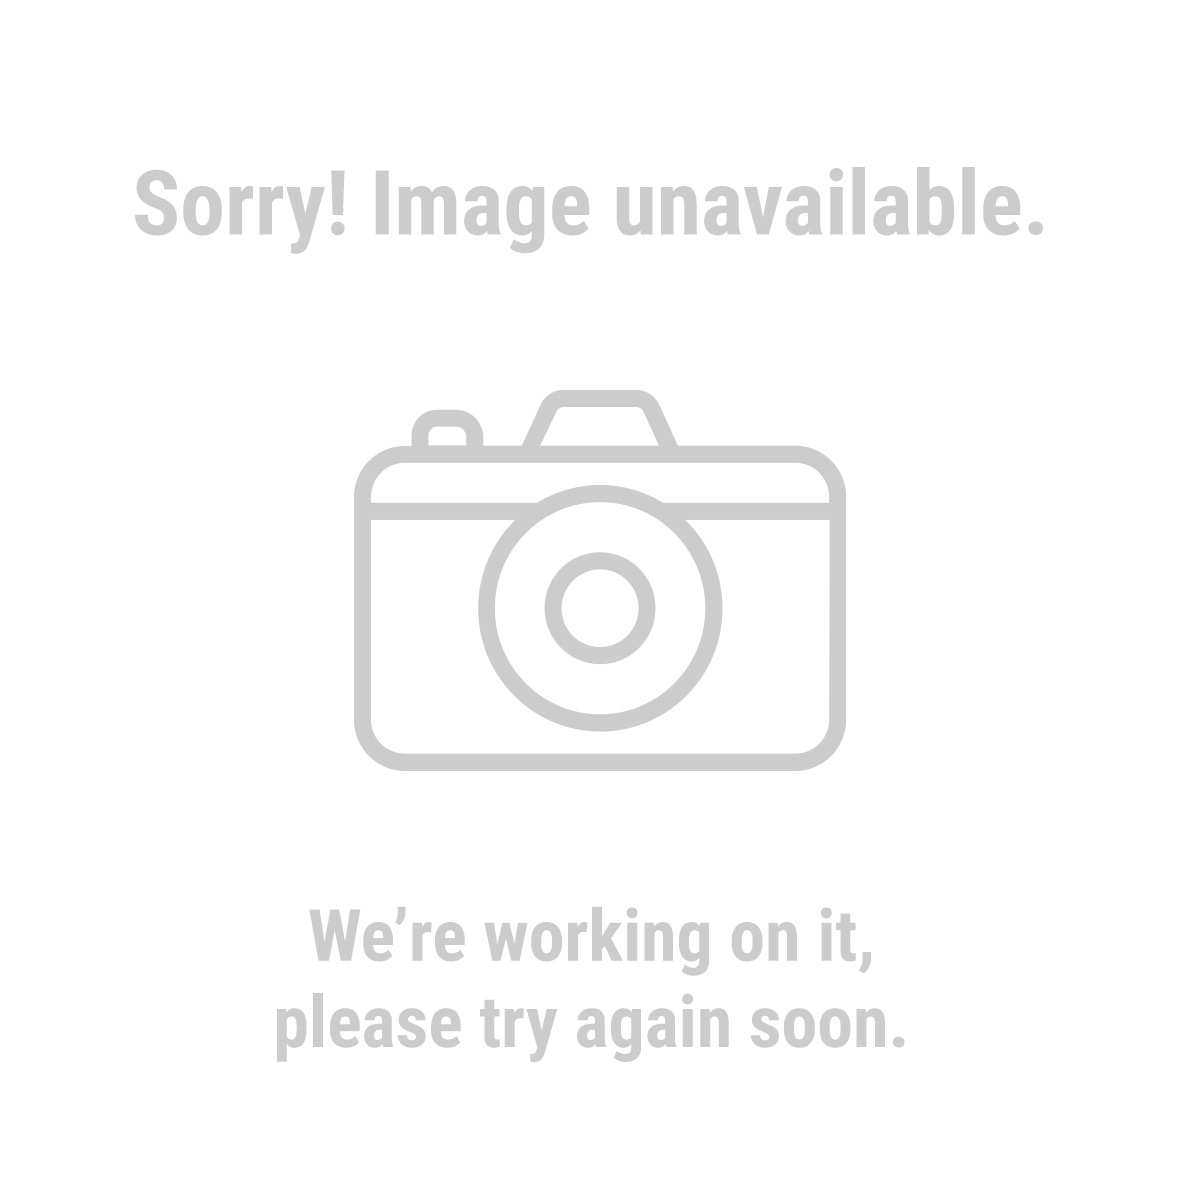 HFT® 69123 9 ft. 4 in. x 11 ft. 4 in. Blue All Purpose/Weather Resistant Tarp